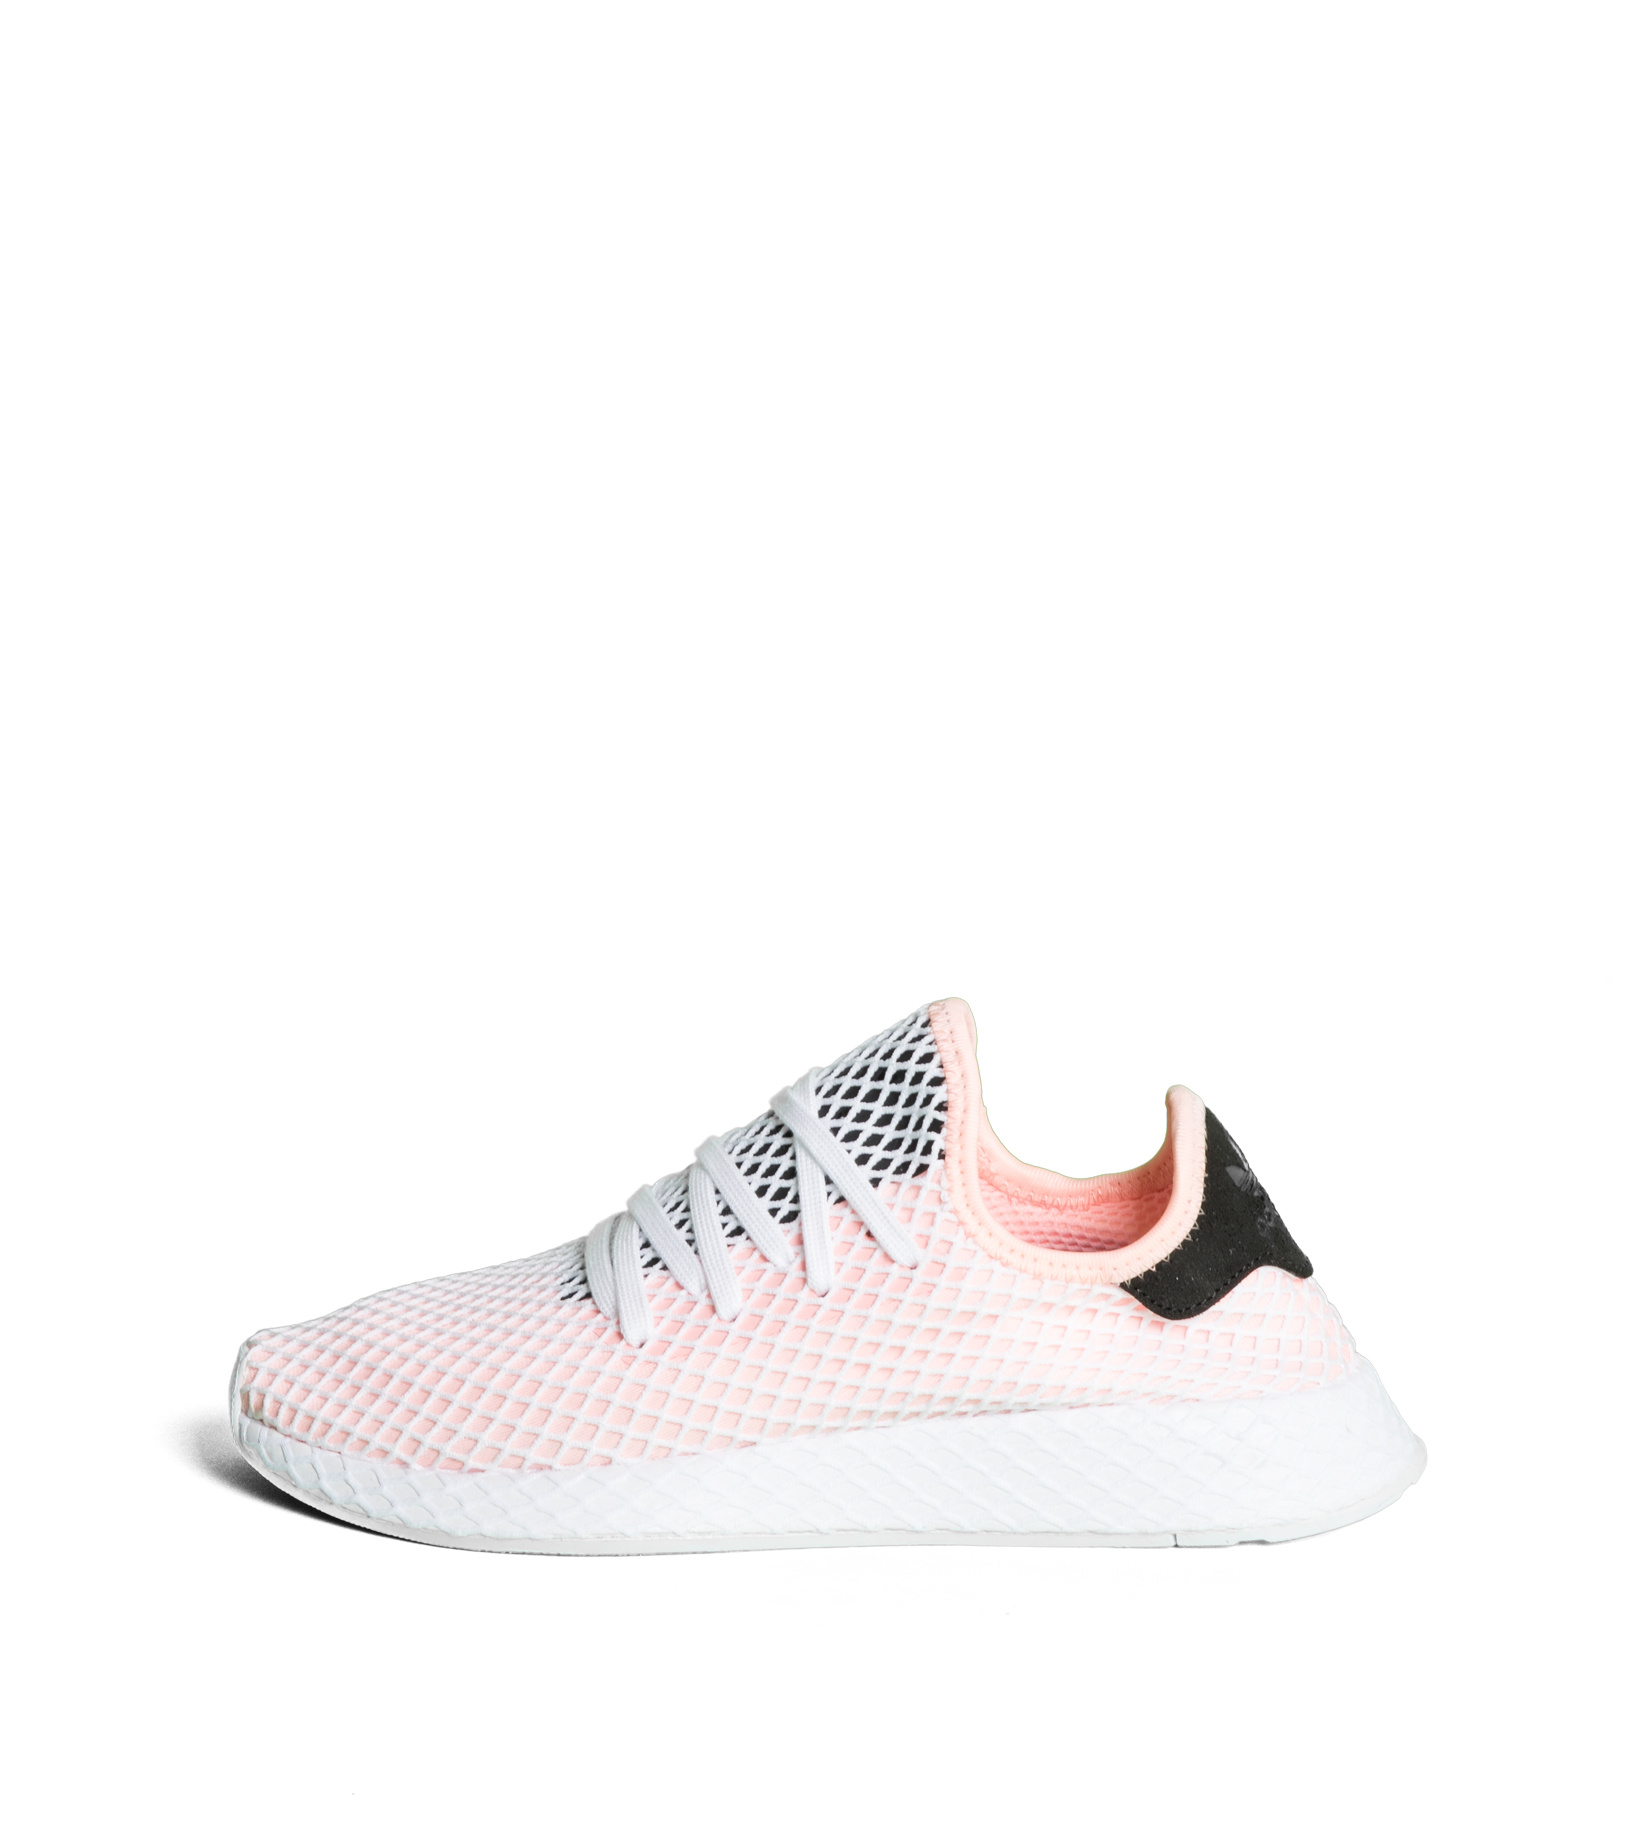 "Deerupt Runner ""White/Black""-3"